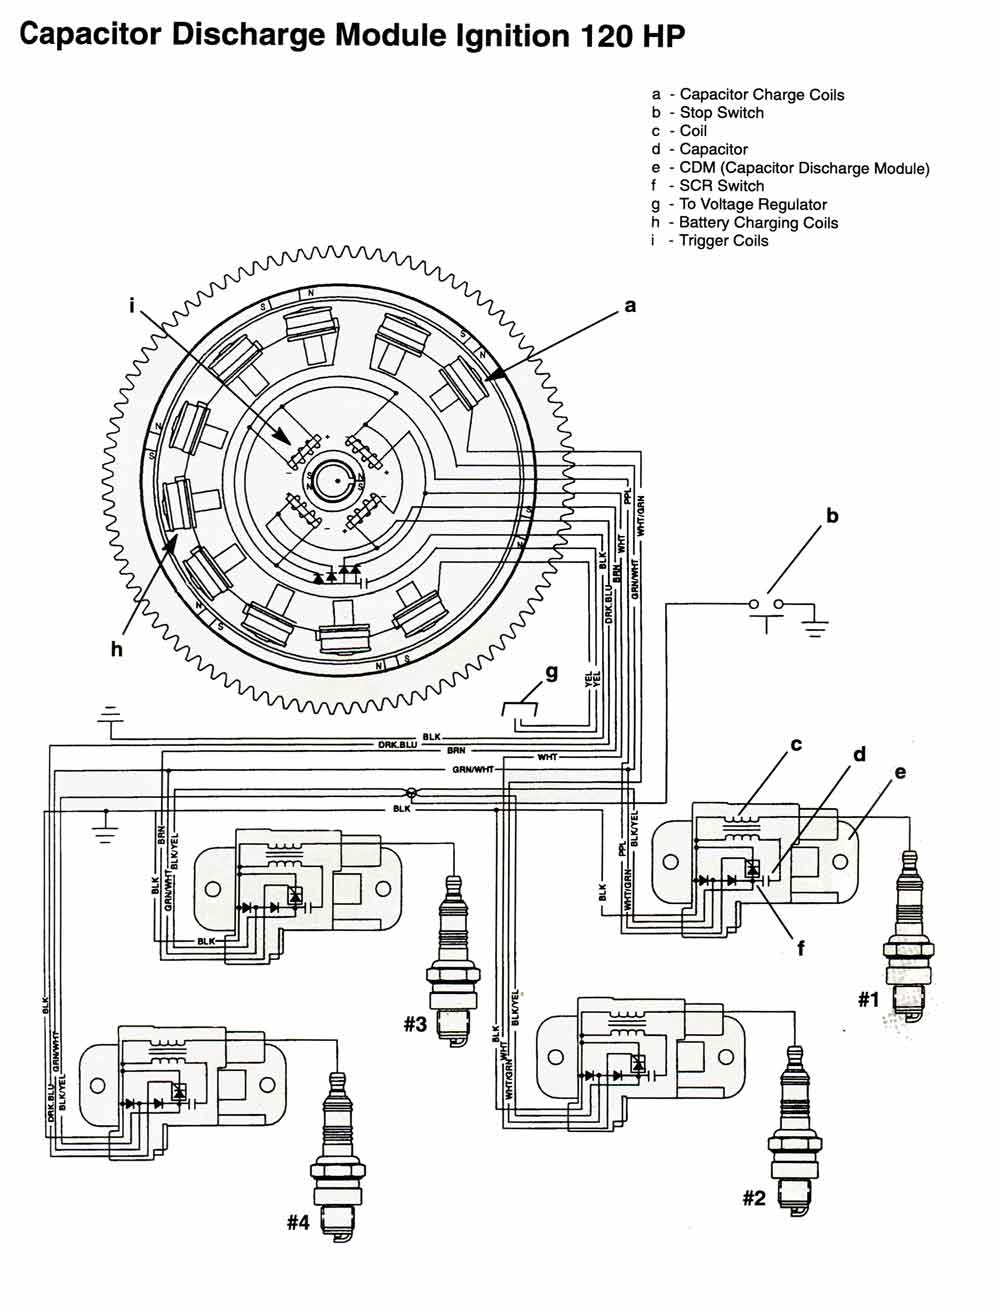 mastertech marine chrysler force outboard wiring diagrams rh maxrules com 9.9 Johnson Outboard Parts Diagram 25 HP Johnson Wiring-Diagram